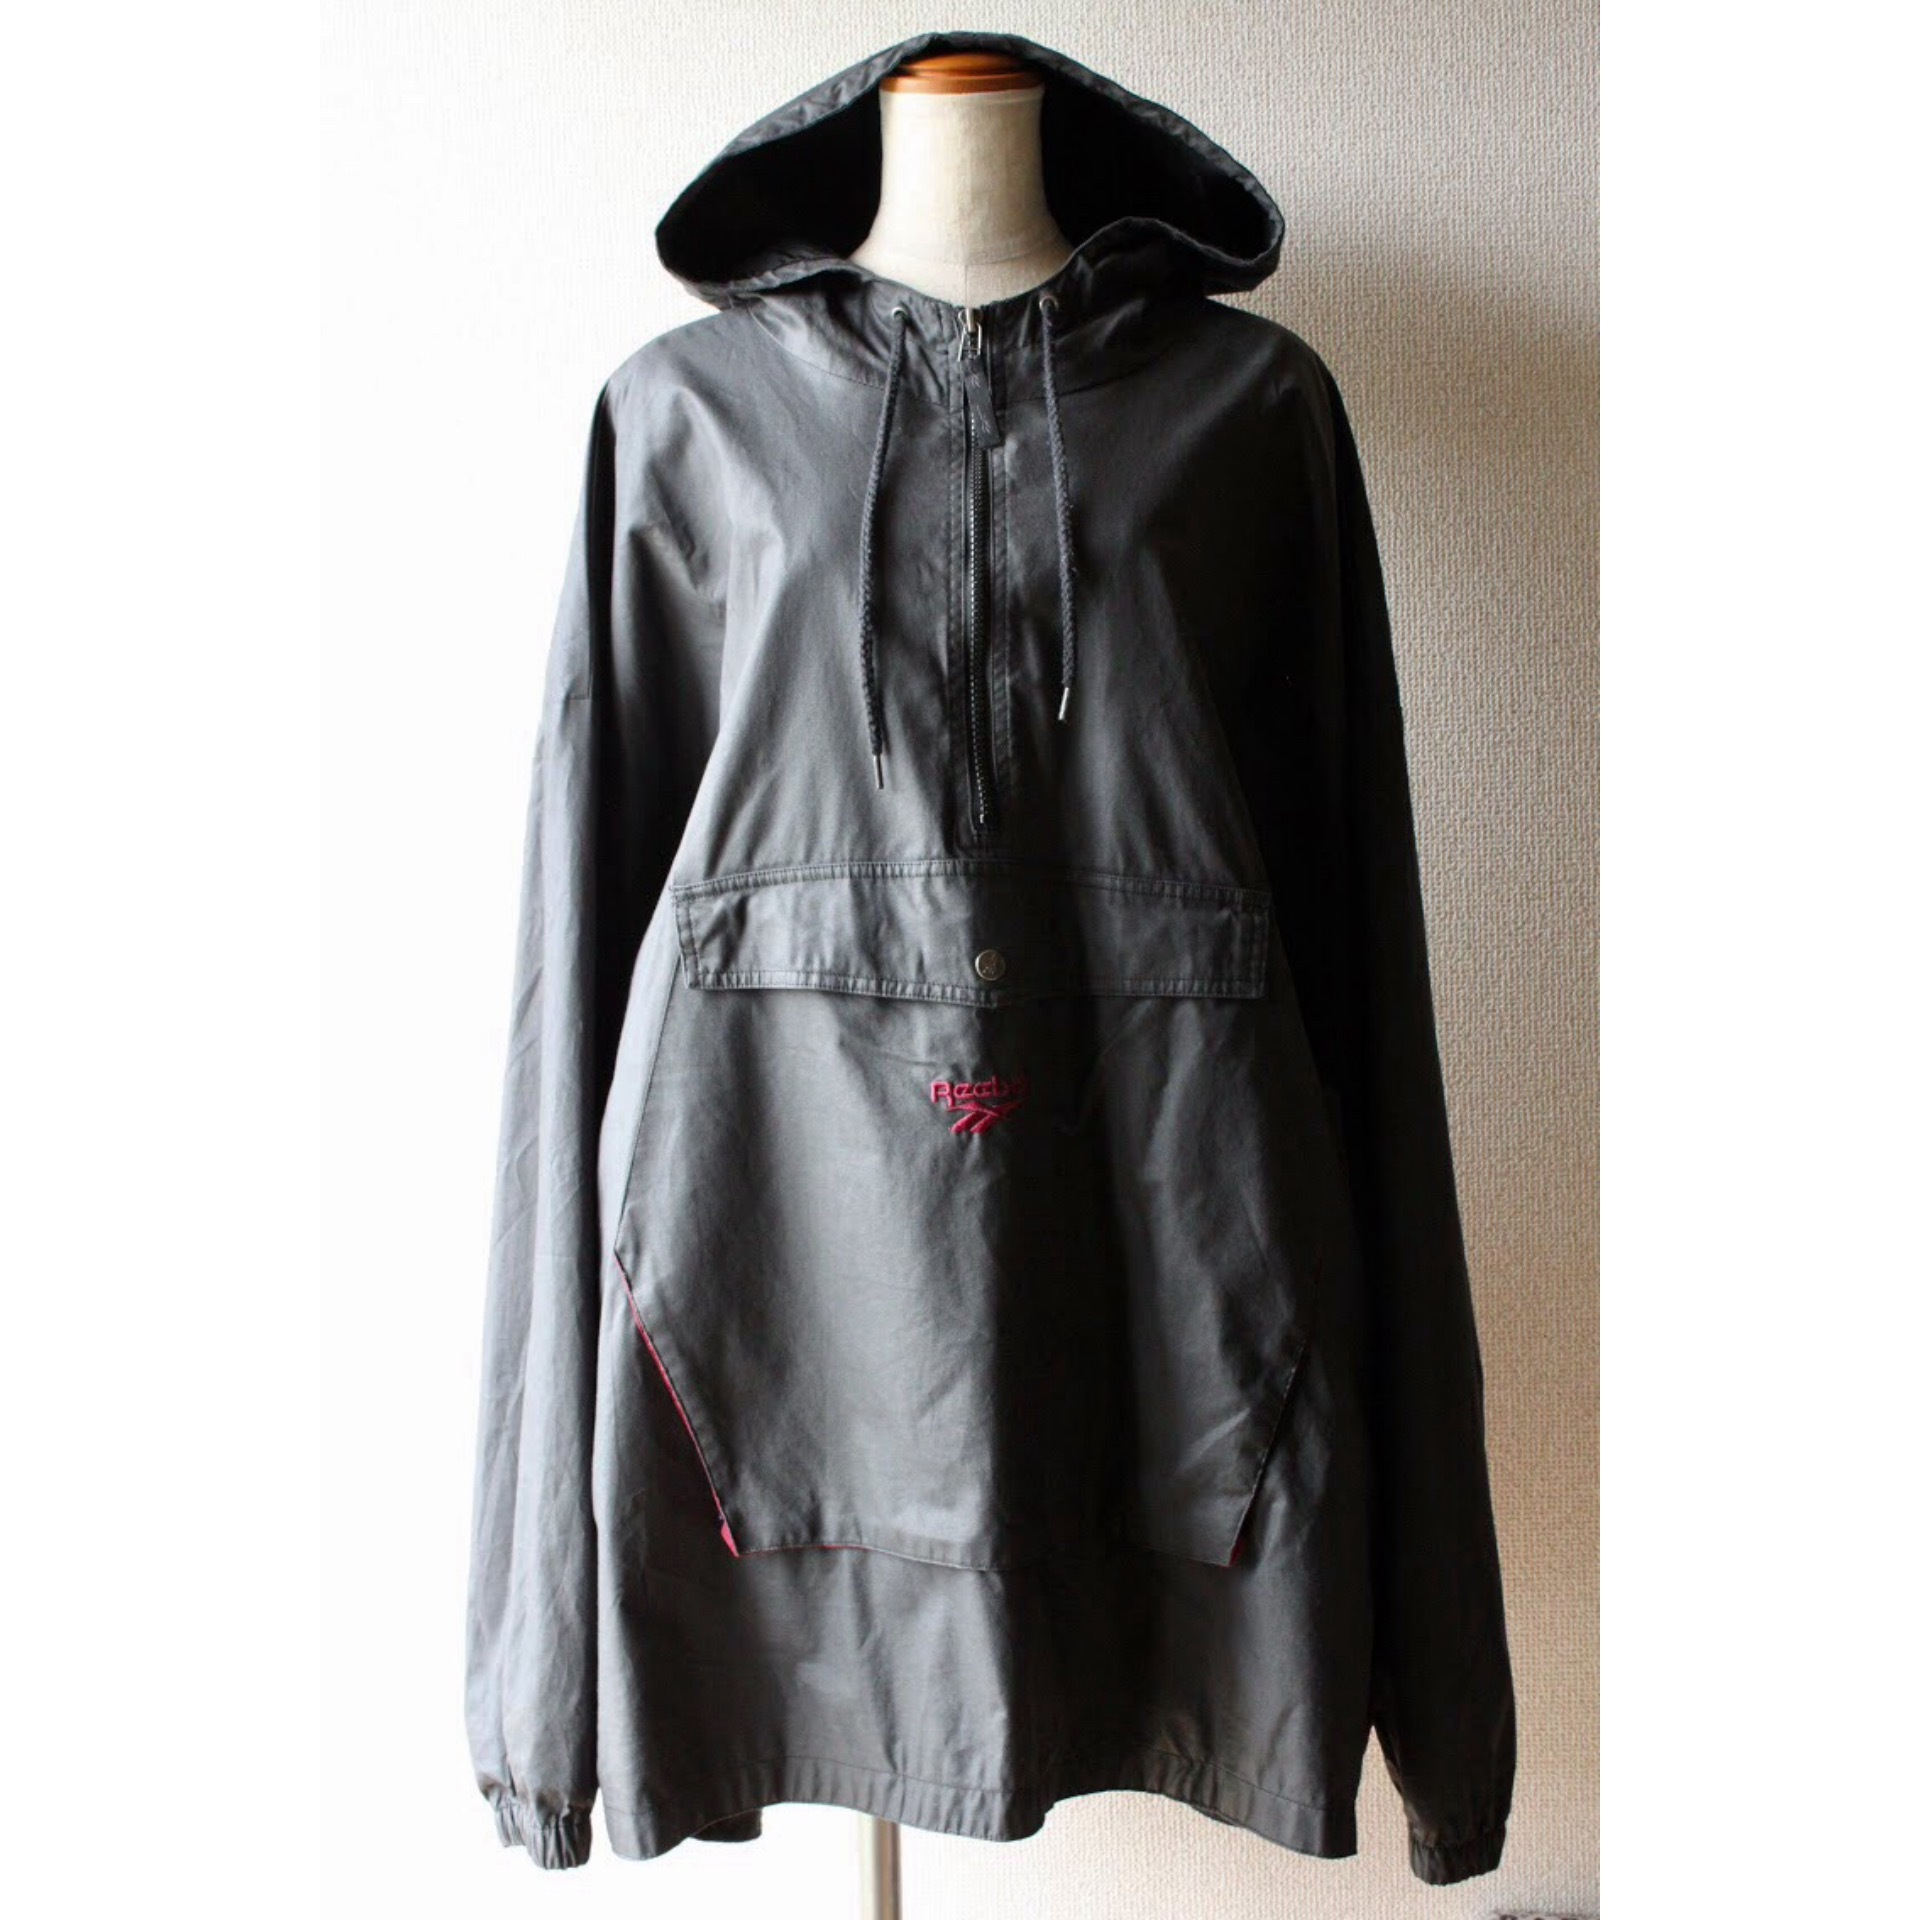 Vintage oversized hooded jacket by Reebok